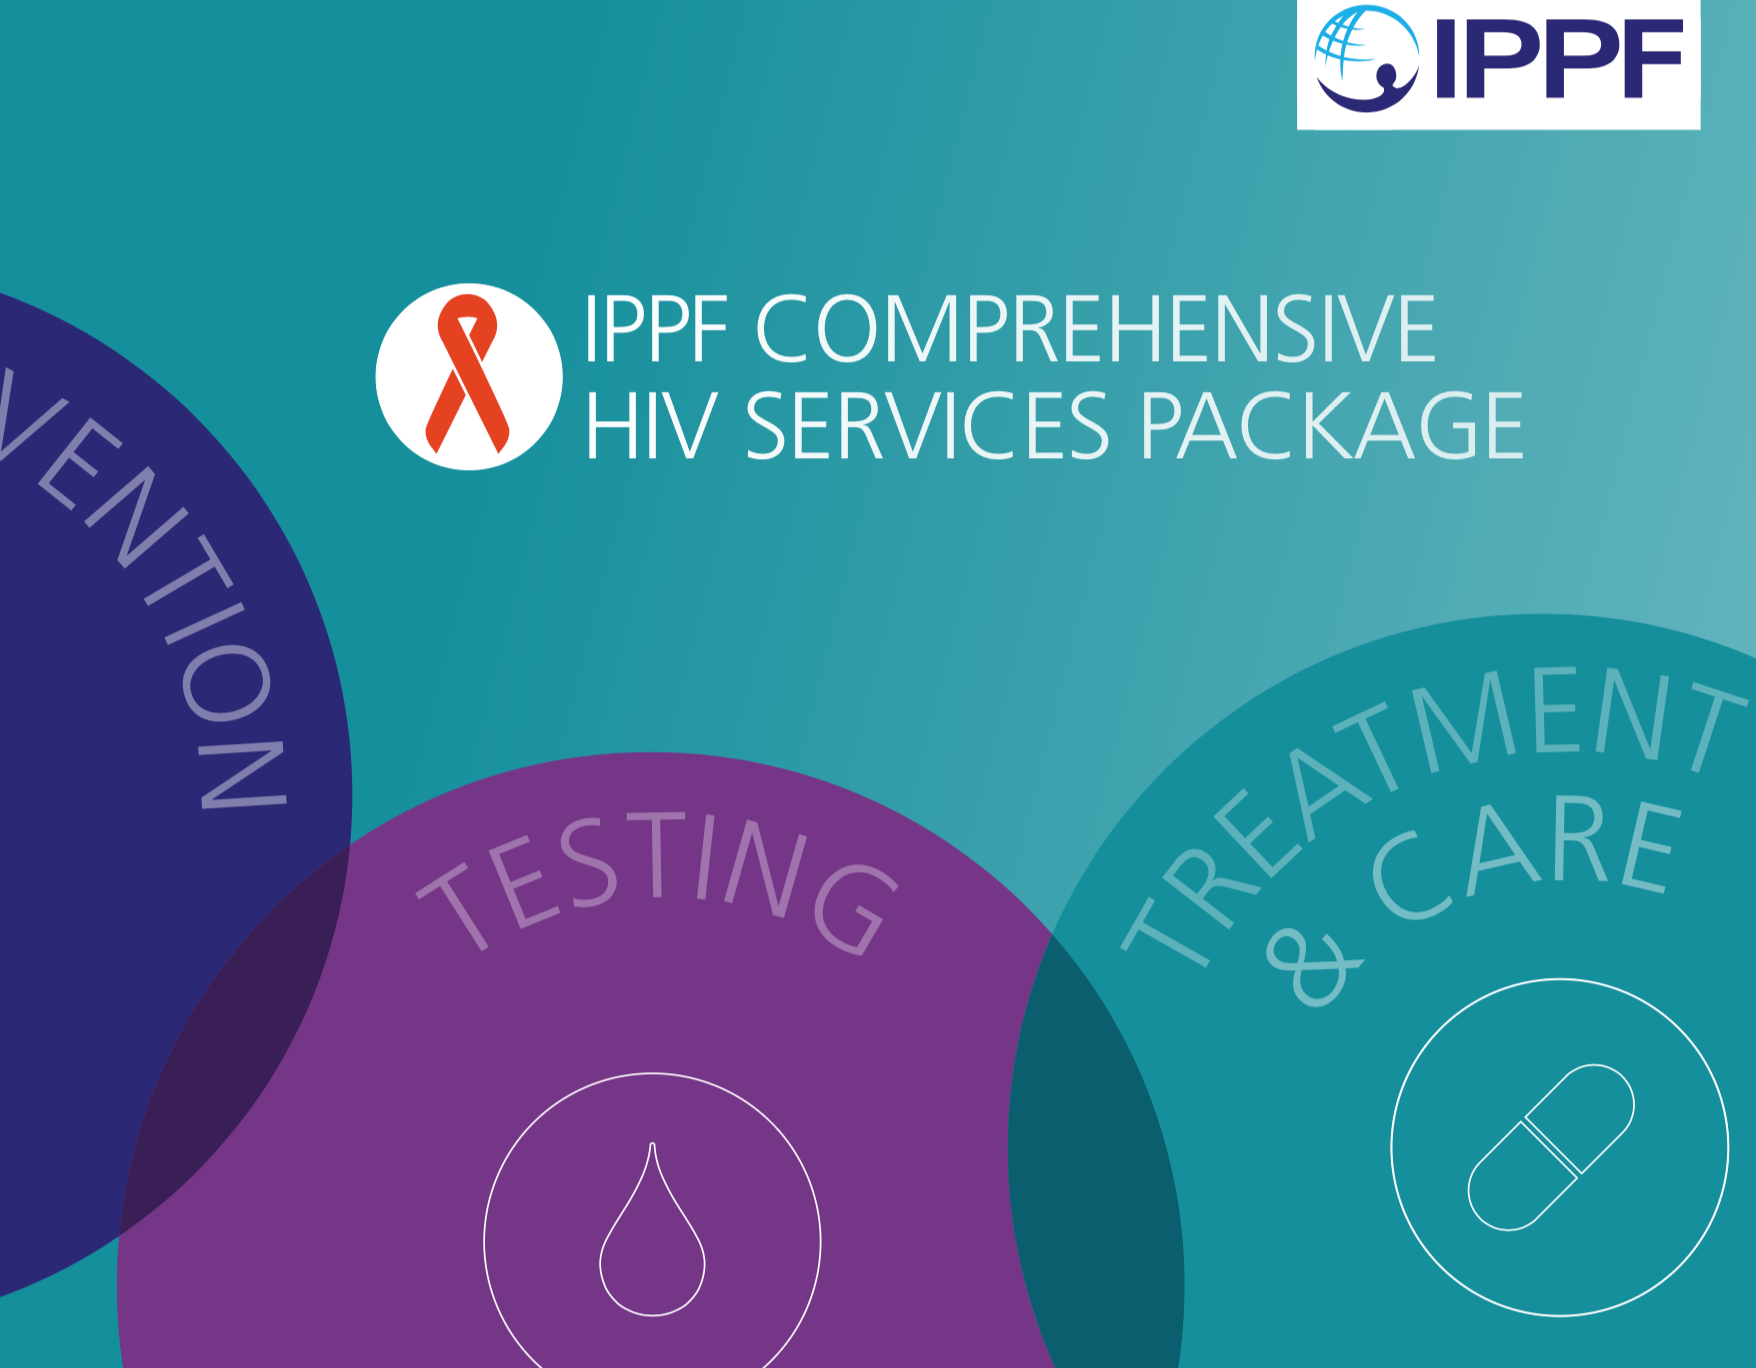 This guidance is designed for use by IPPF Member Associations to strengthen and define a comprehensive package of services for HIV prevention, testing, treatment and care.